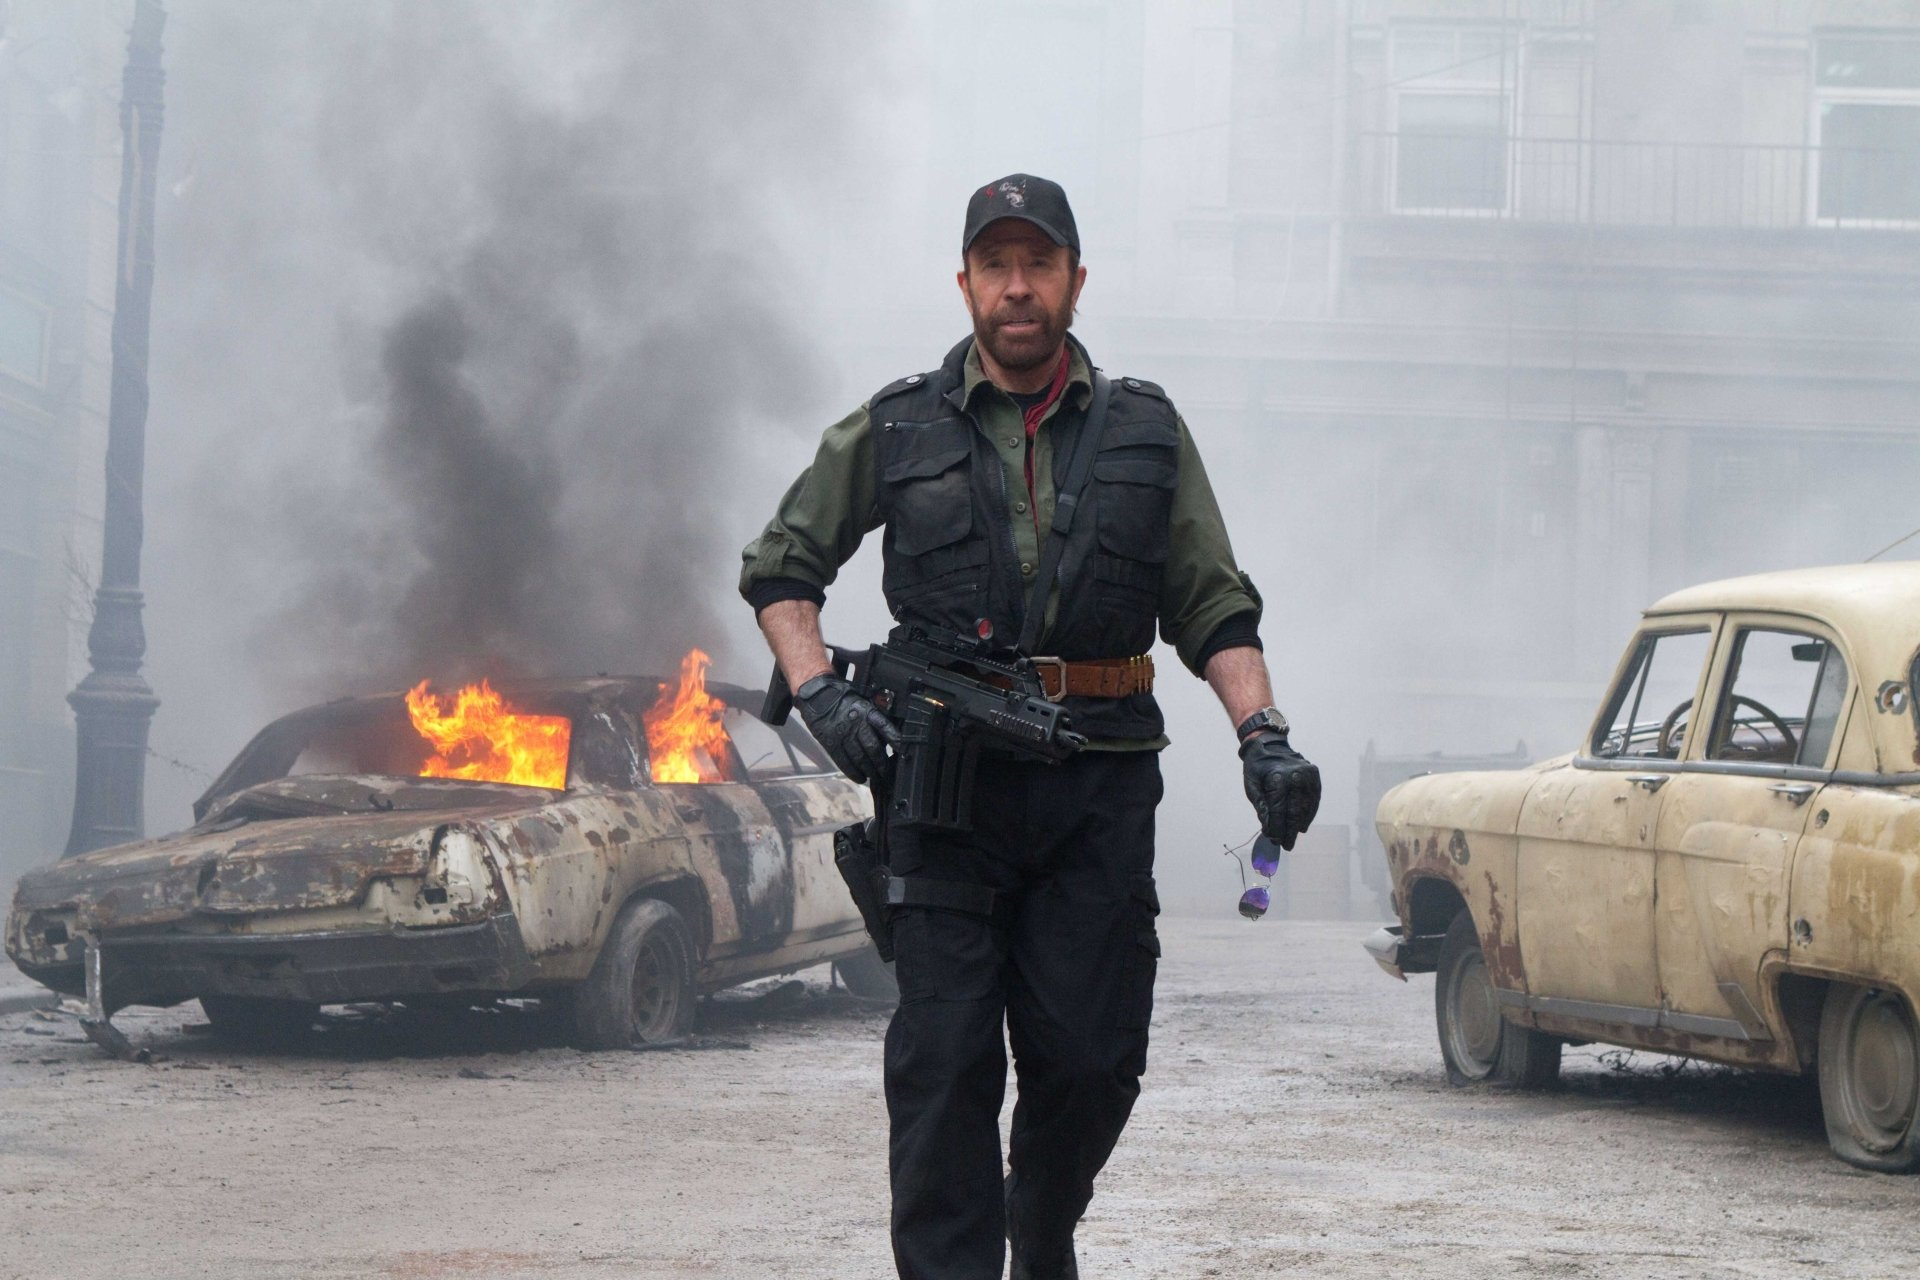 Movie - The Expendables 2  Booker (The Expendables) Chuck Norris Wallpaper